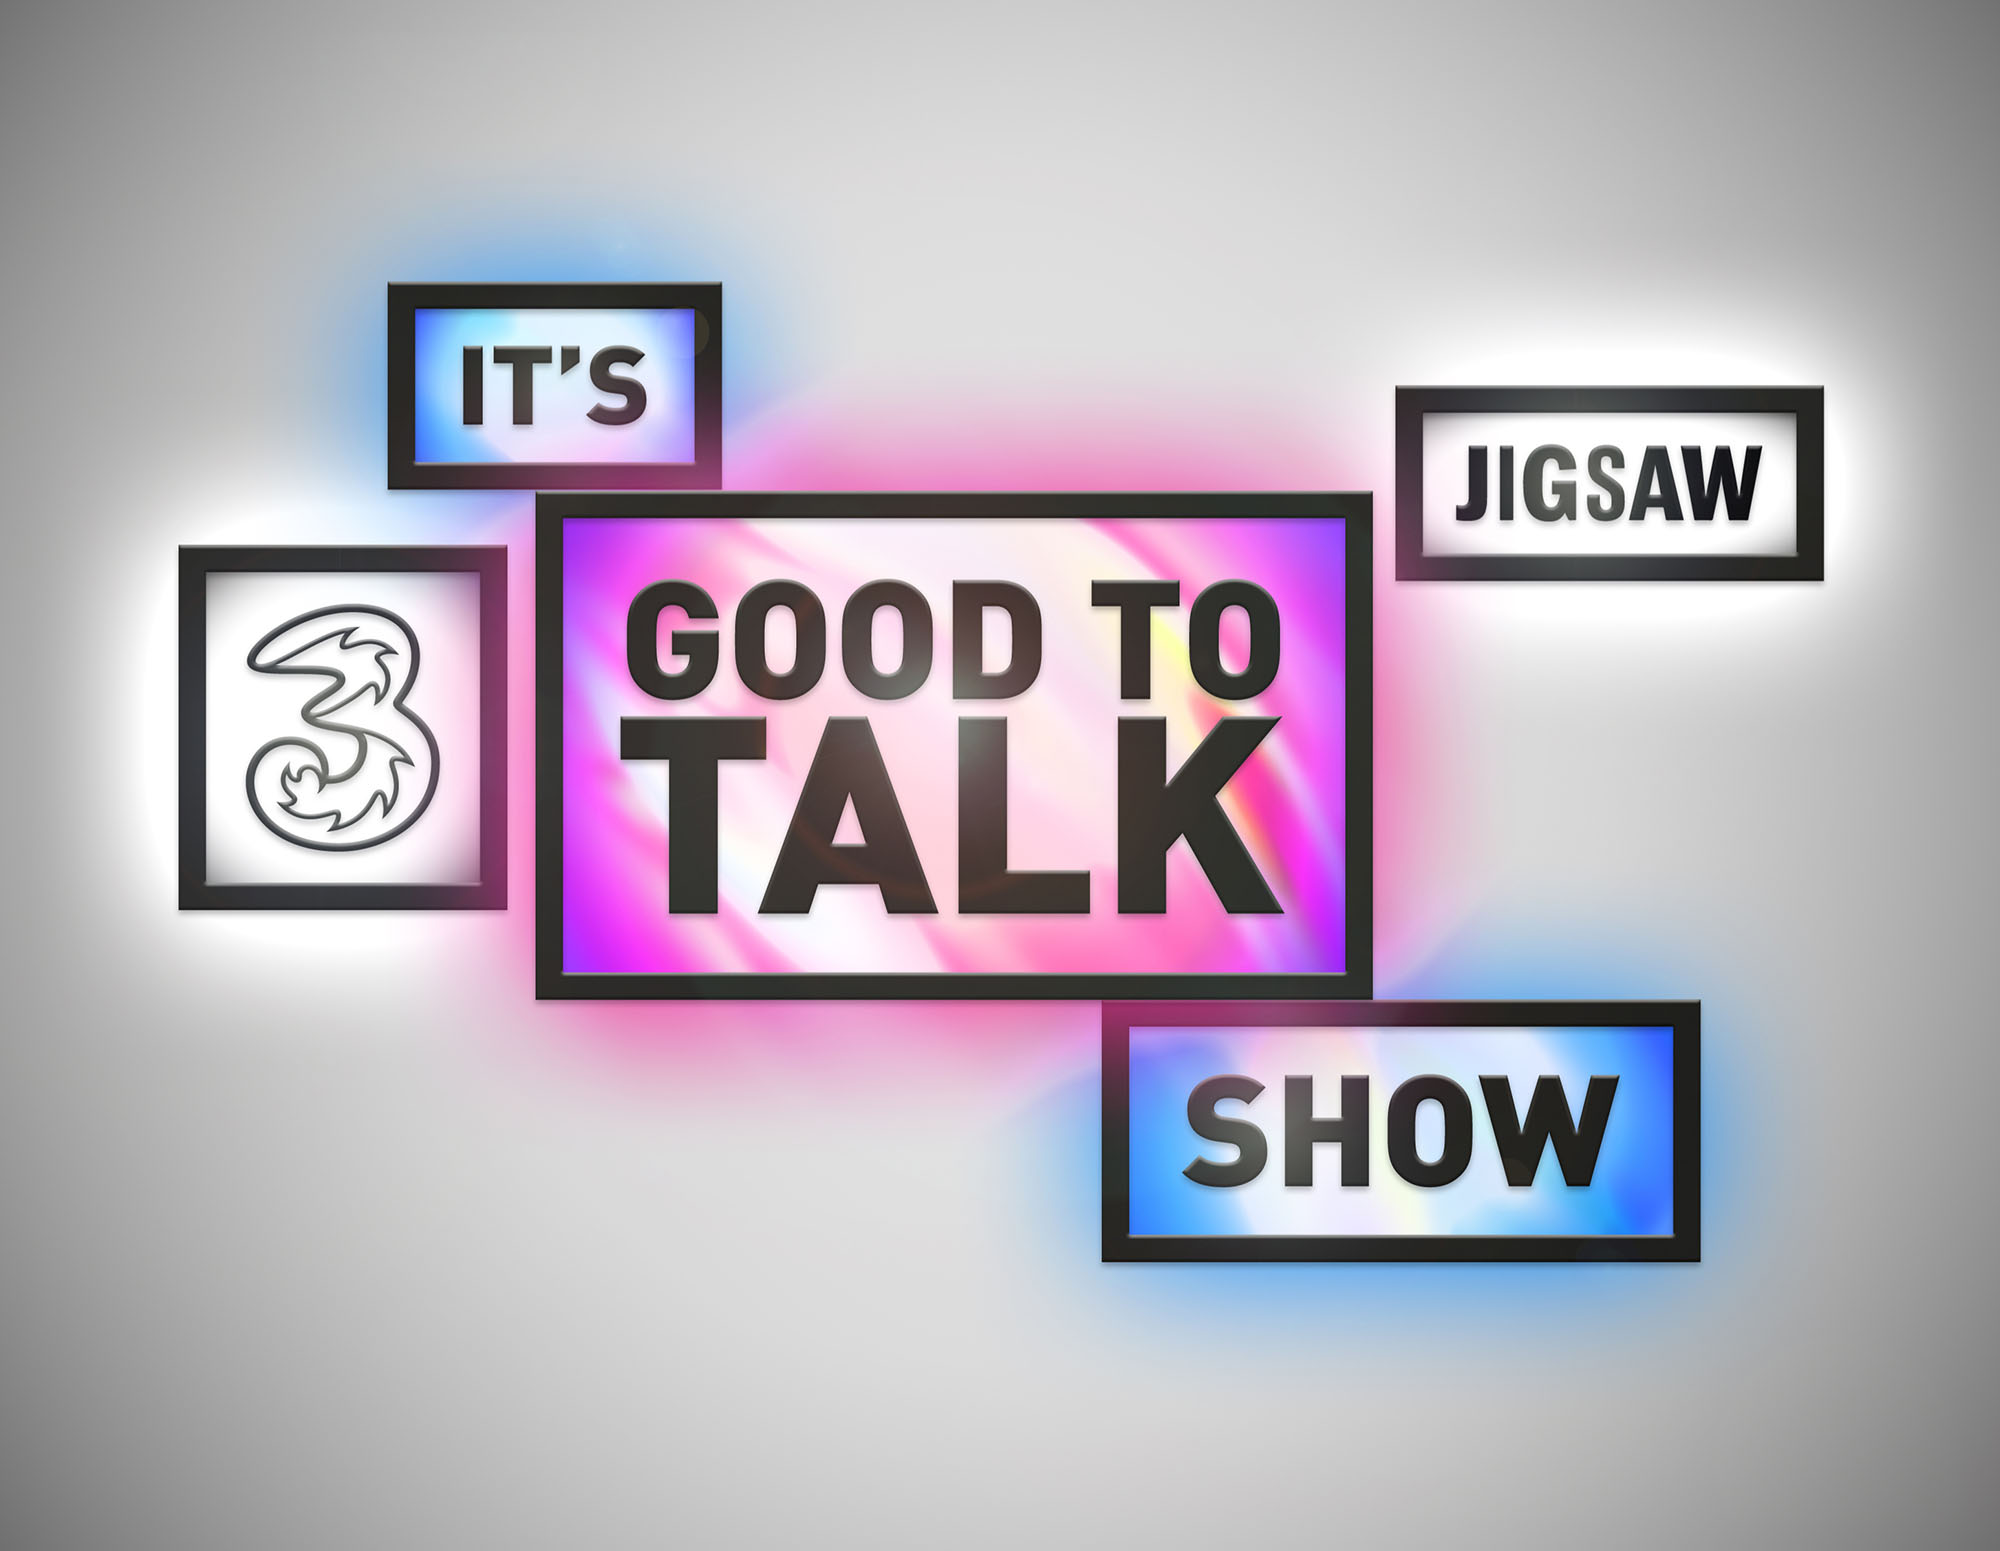 Cover image: Three & Jigsaw — It's Good to Talk Show